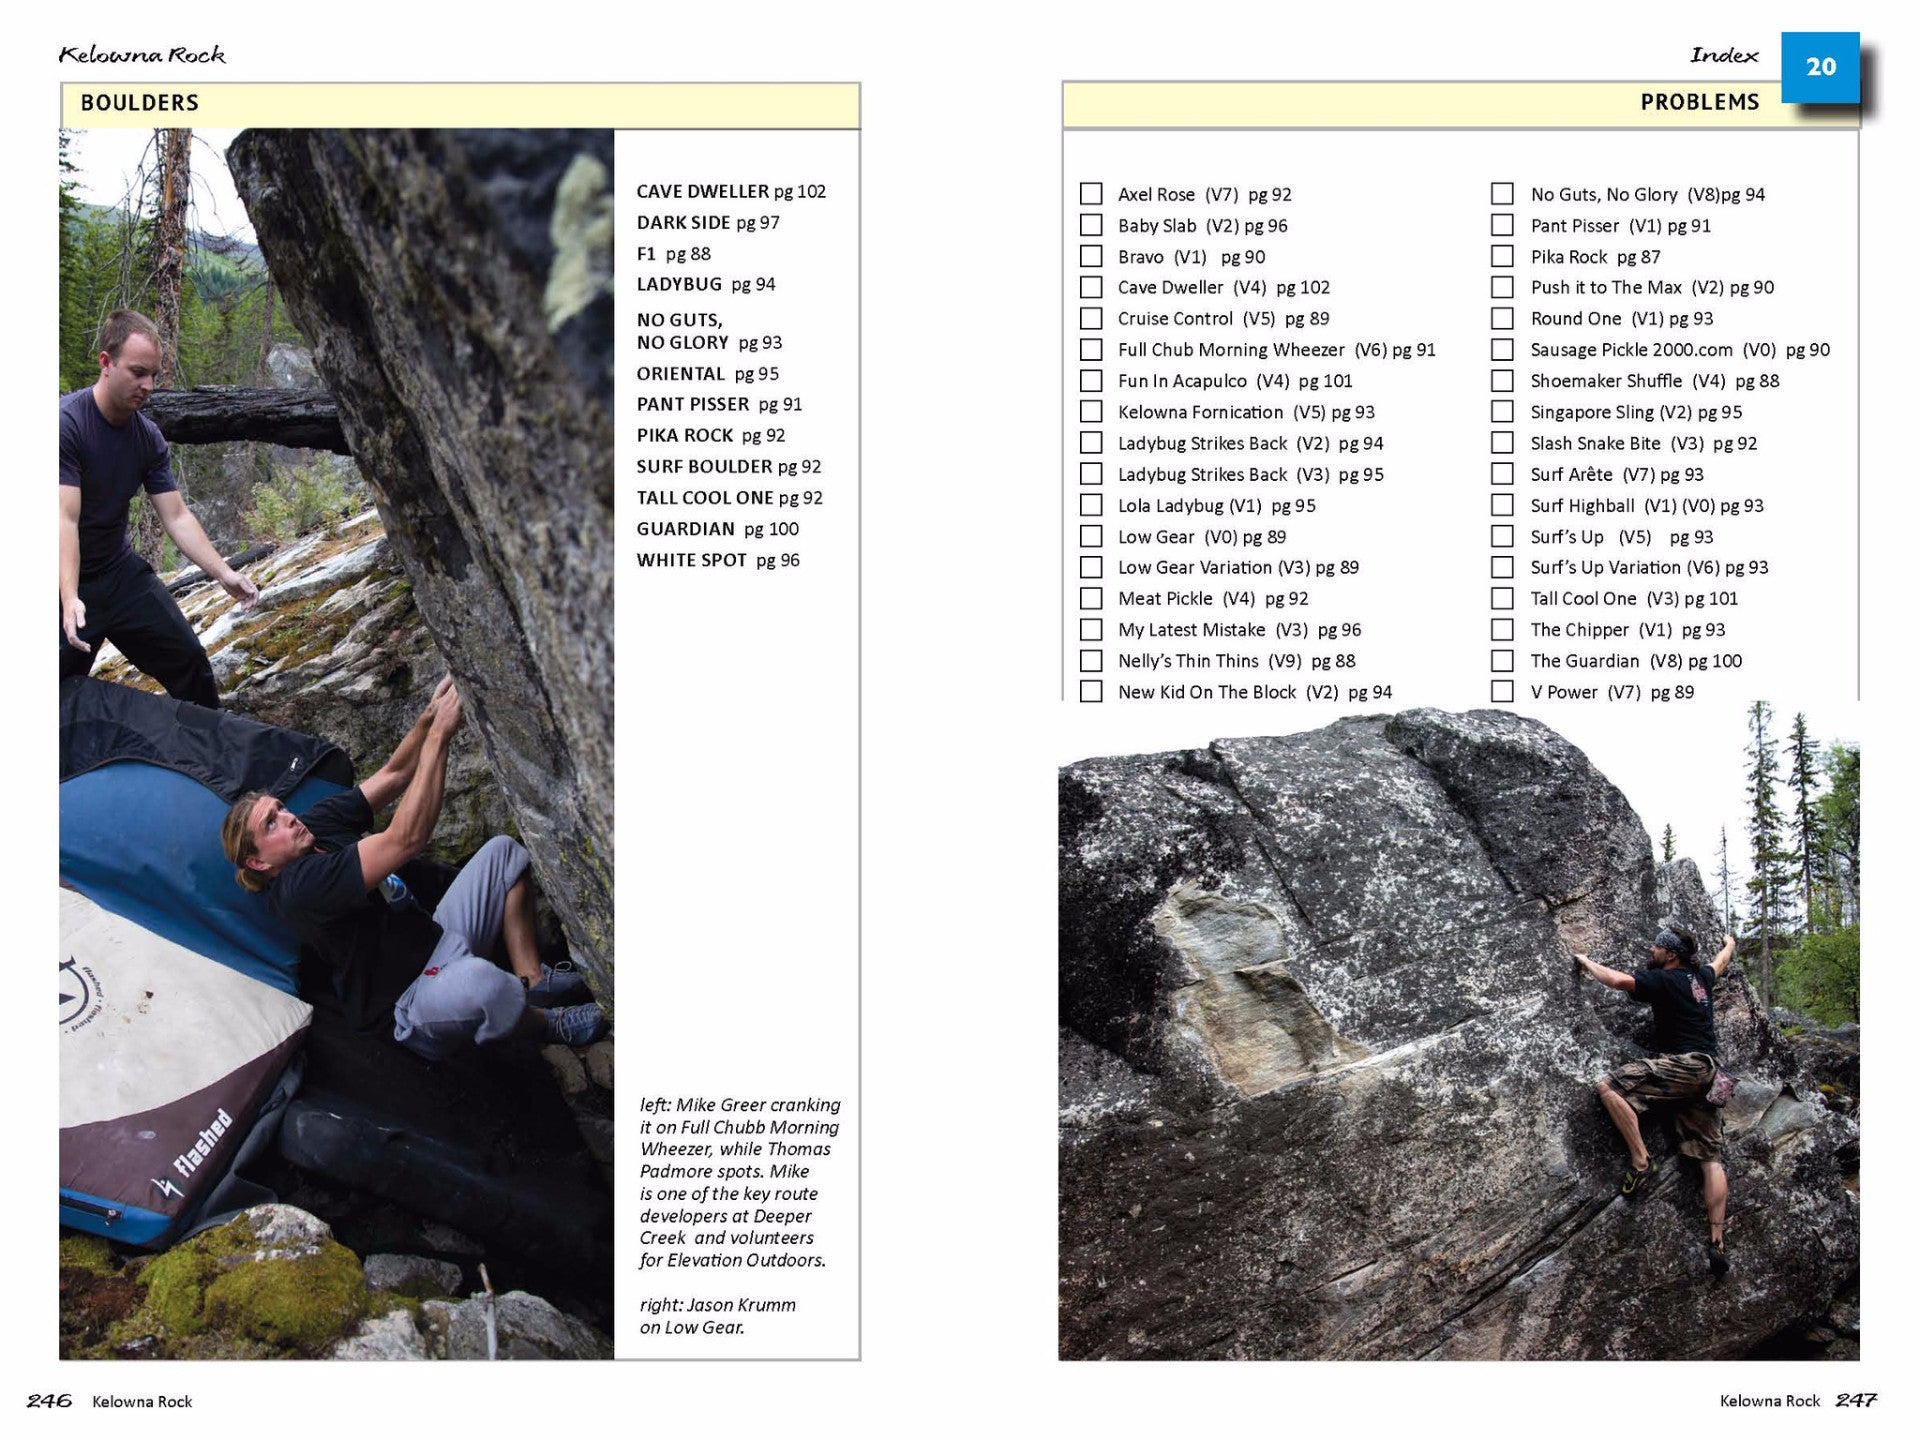 Bouldering Index pages, Kelowna Rock Climbing guidebook